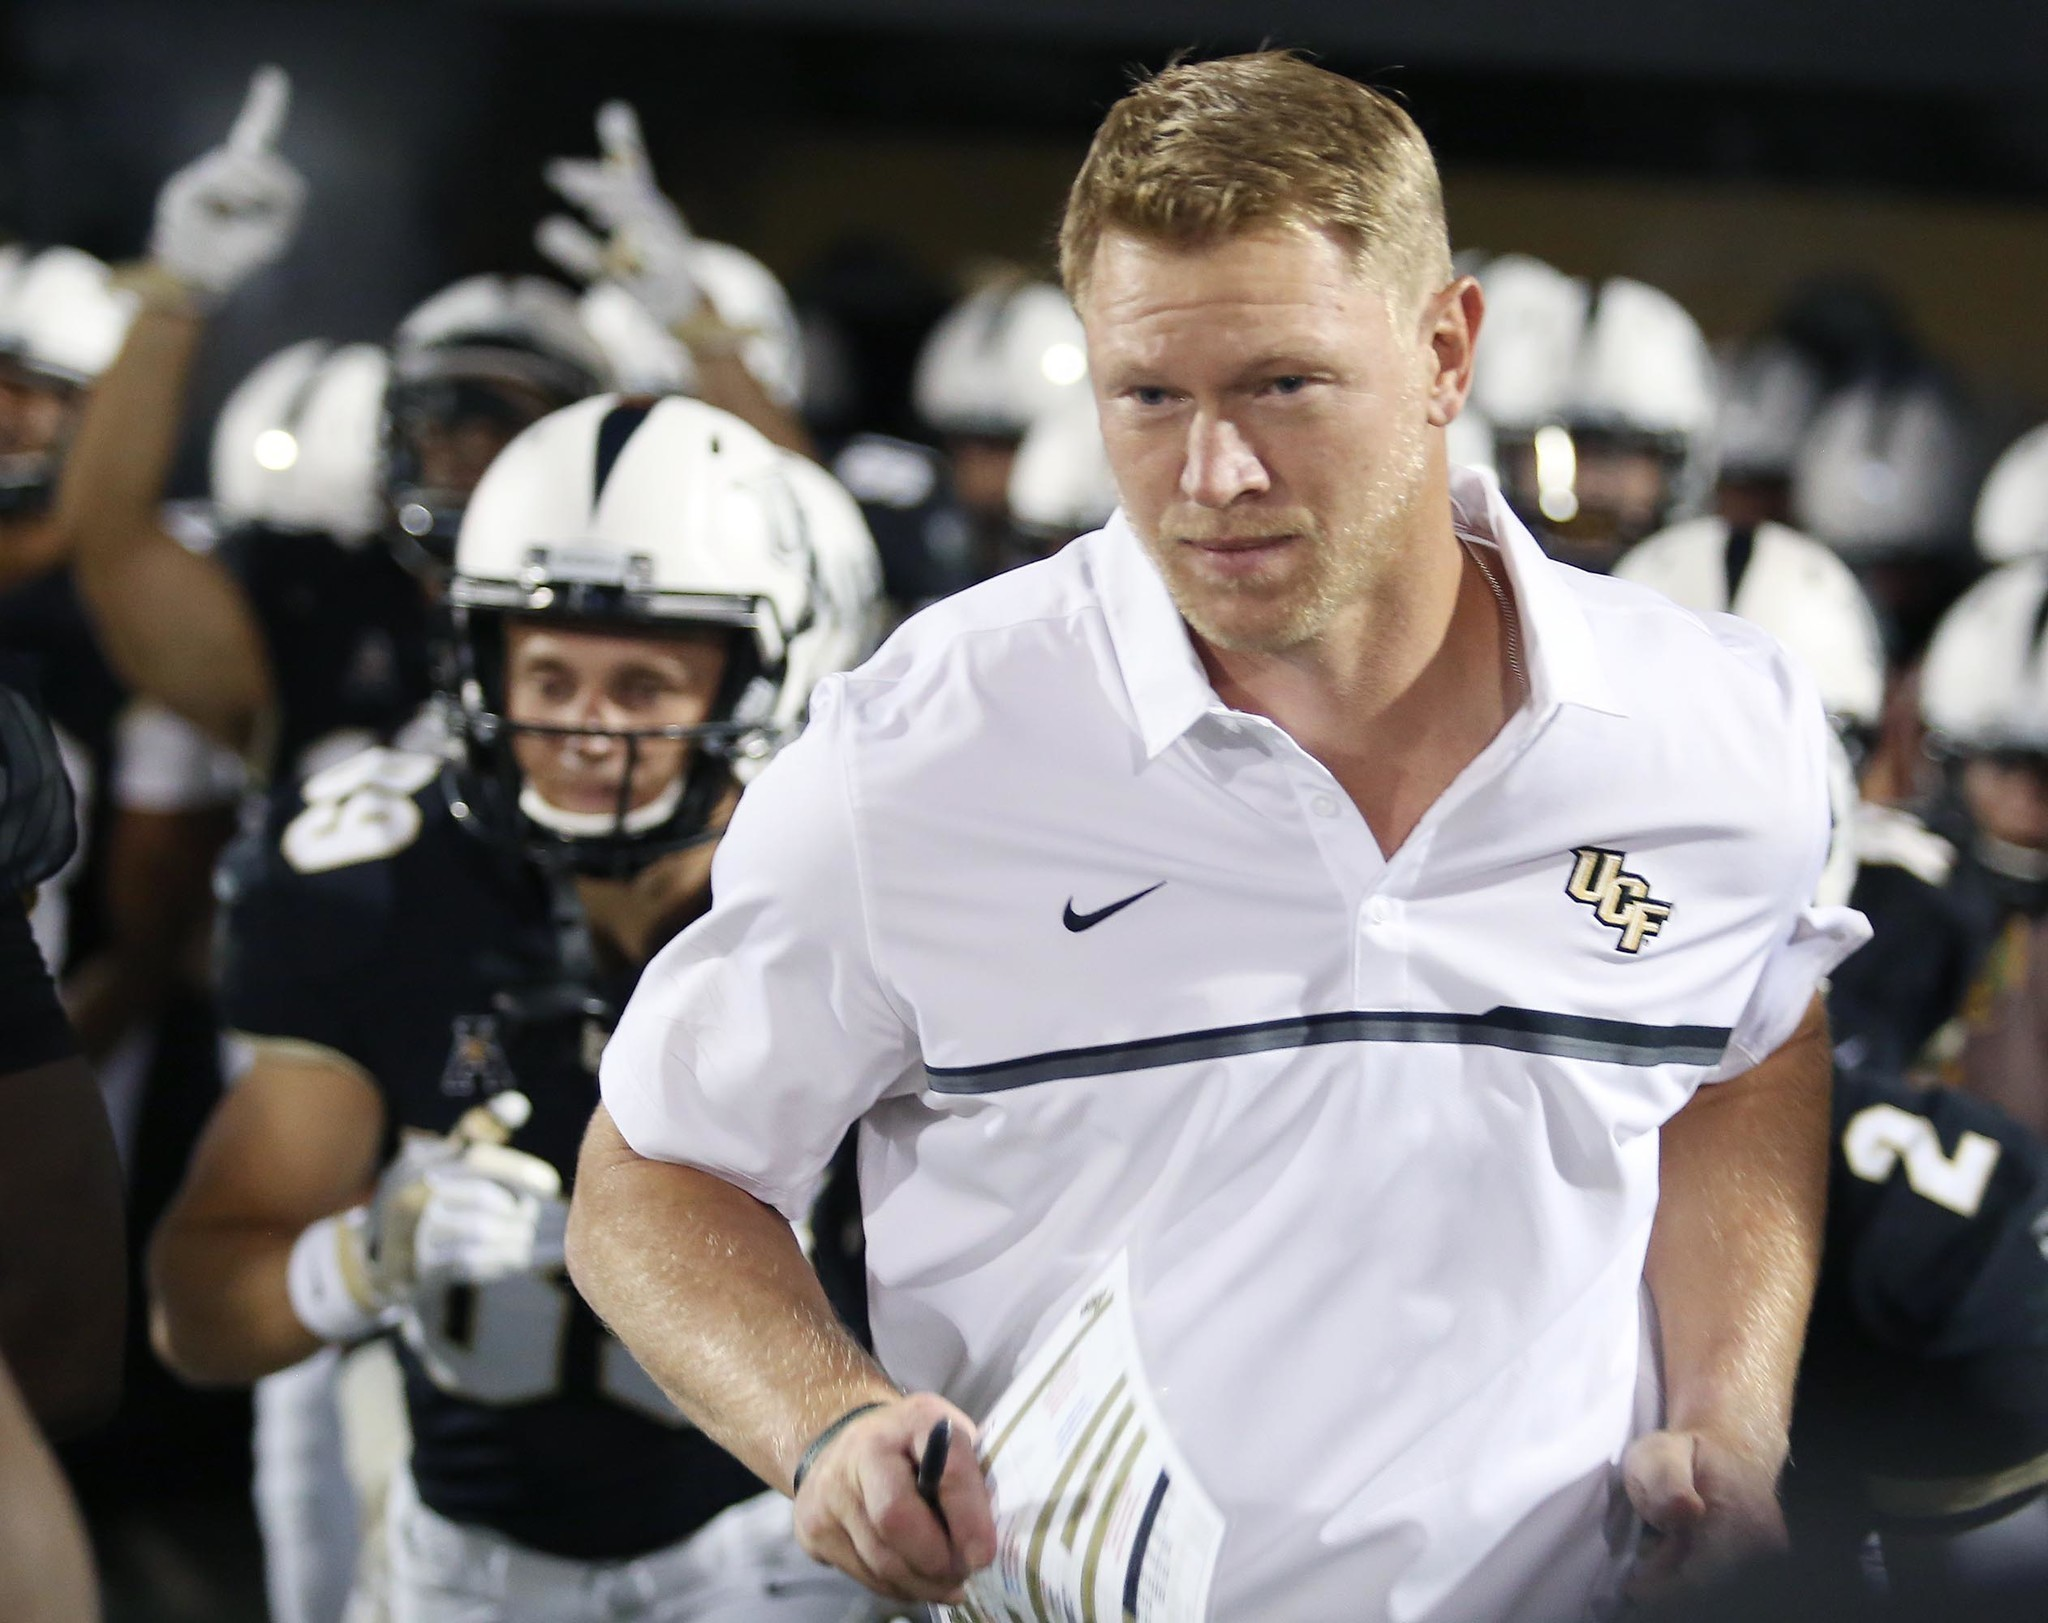 Scott Frost has options as UCF football coach. Is leaving ...